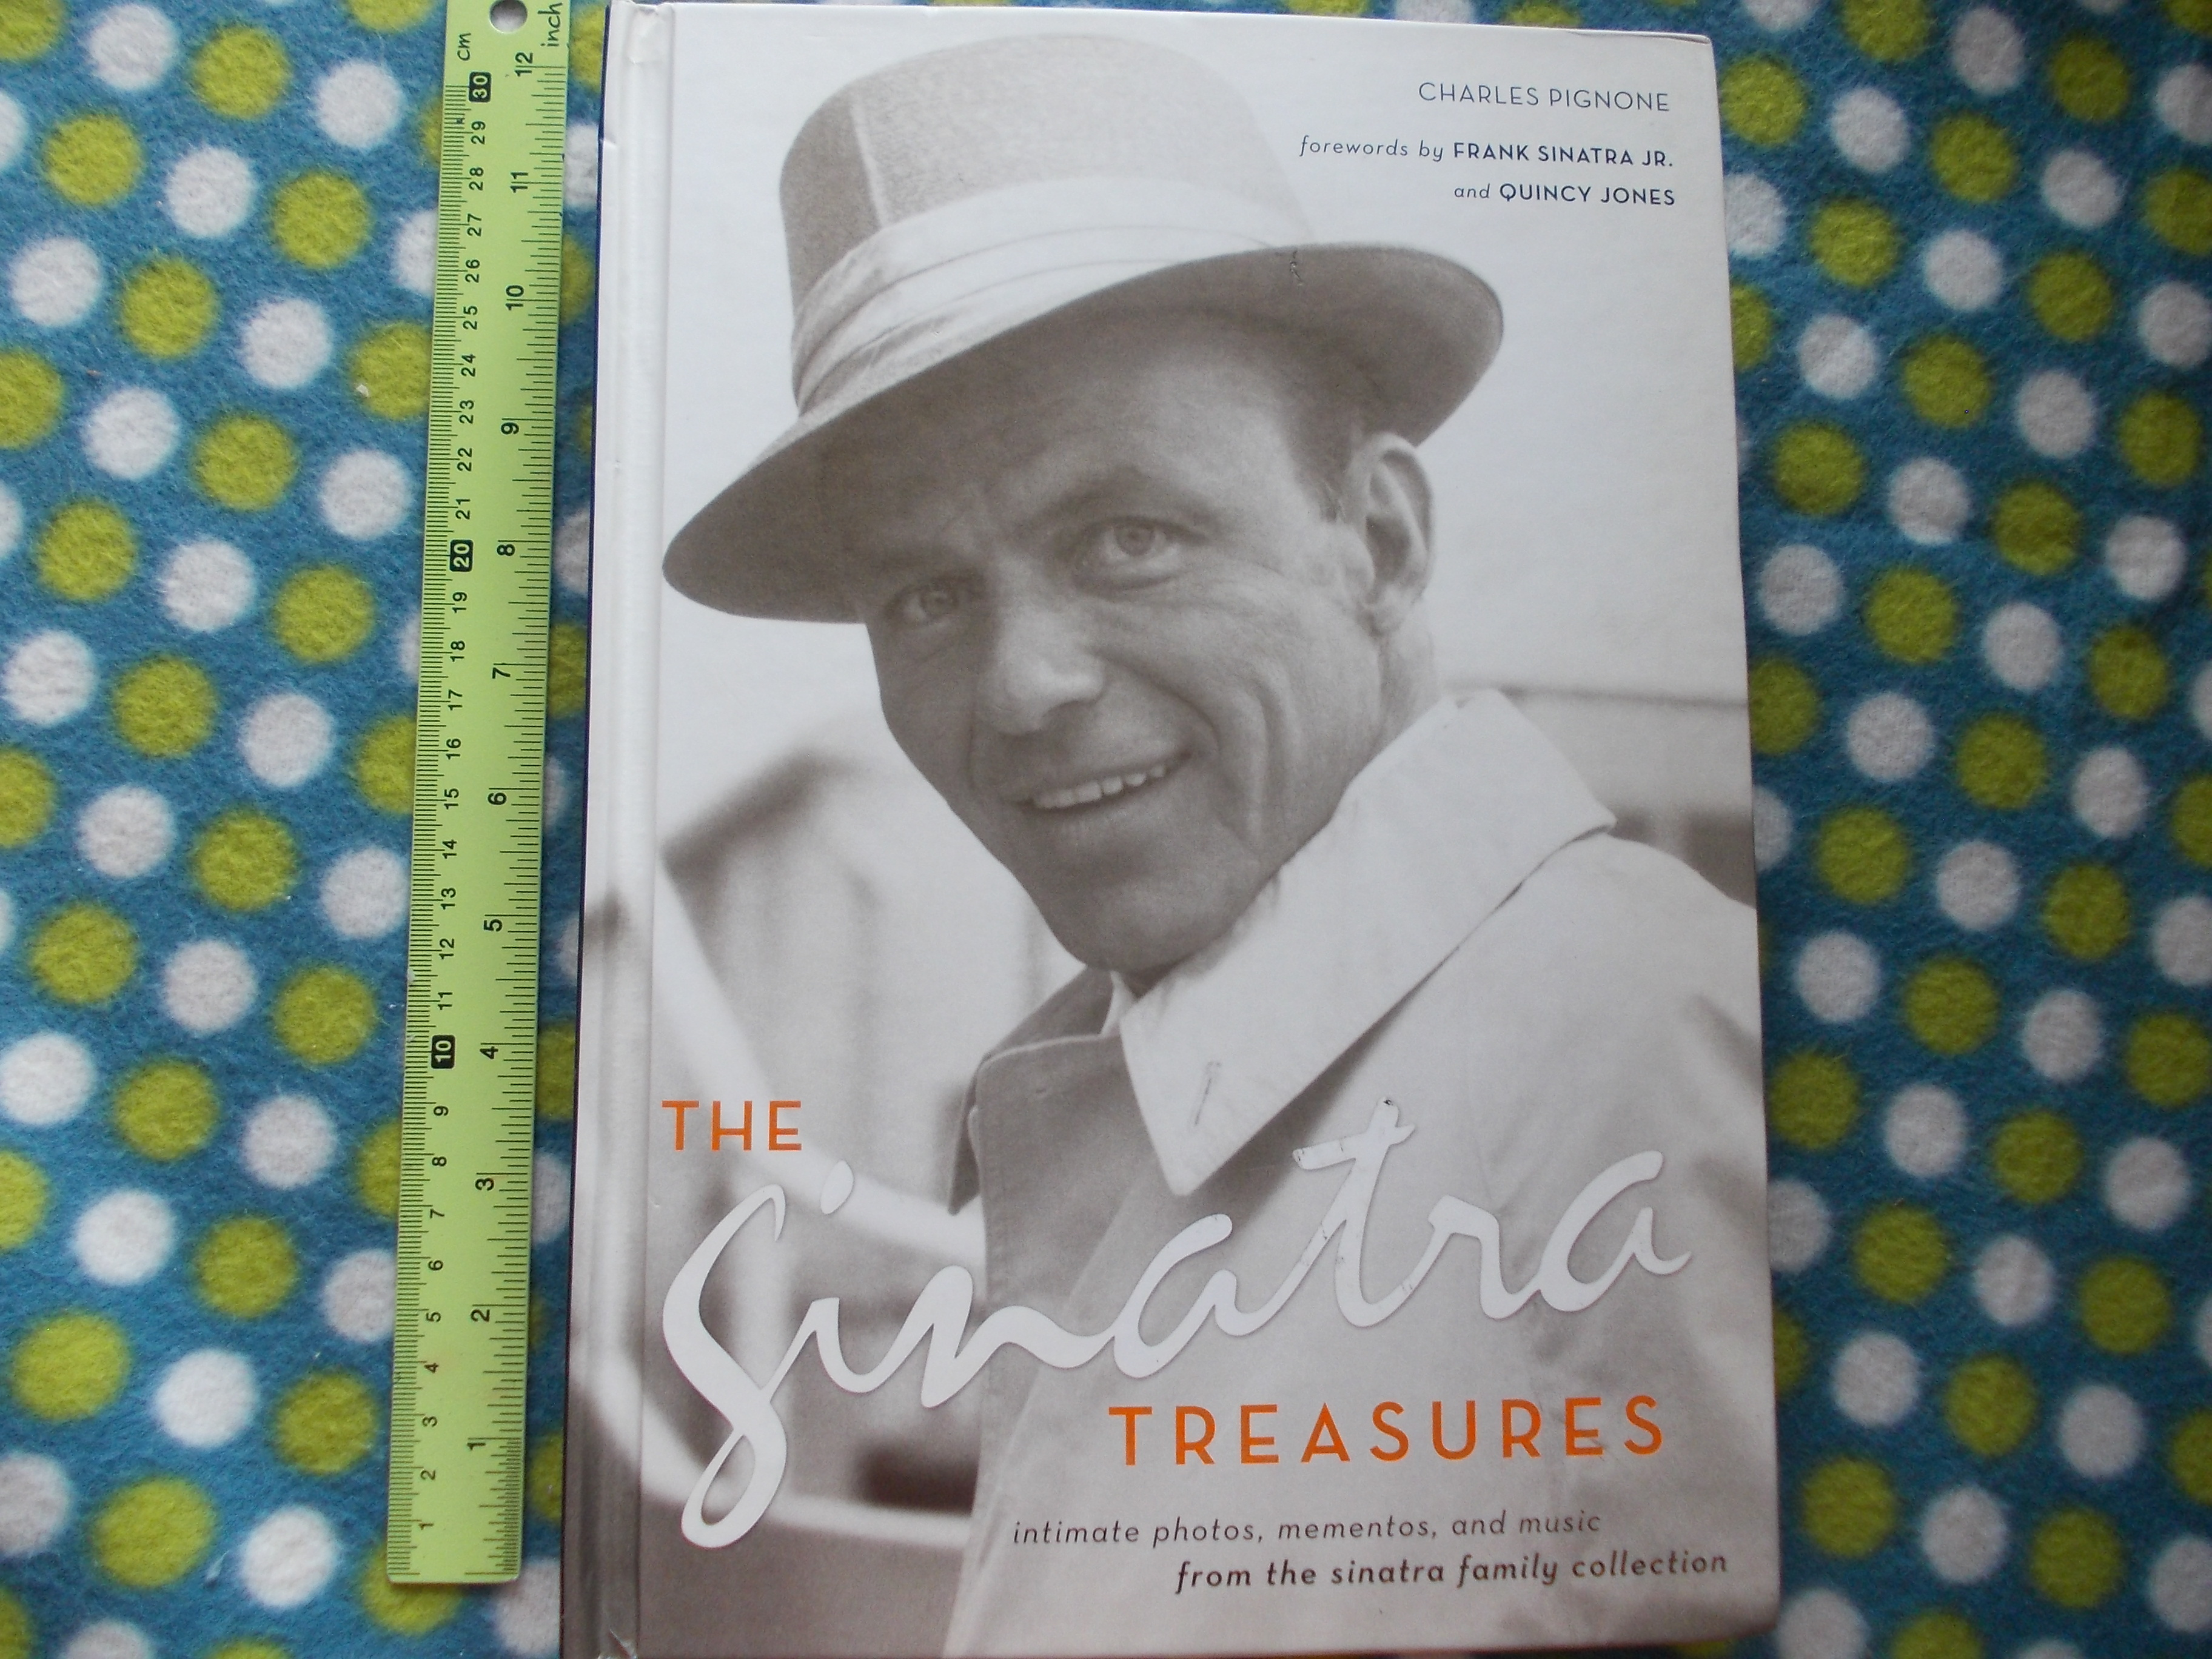 The Sinatra Treasures (Intimate Photos, Momentos, And Music From The Sinatra Family Collection)